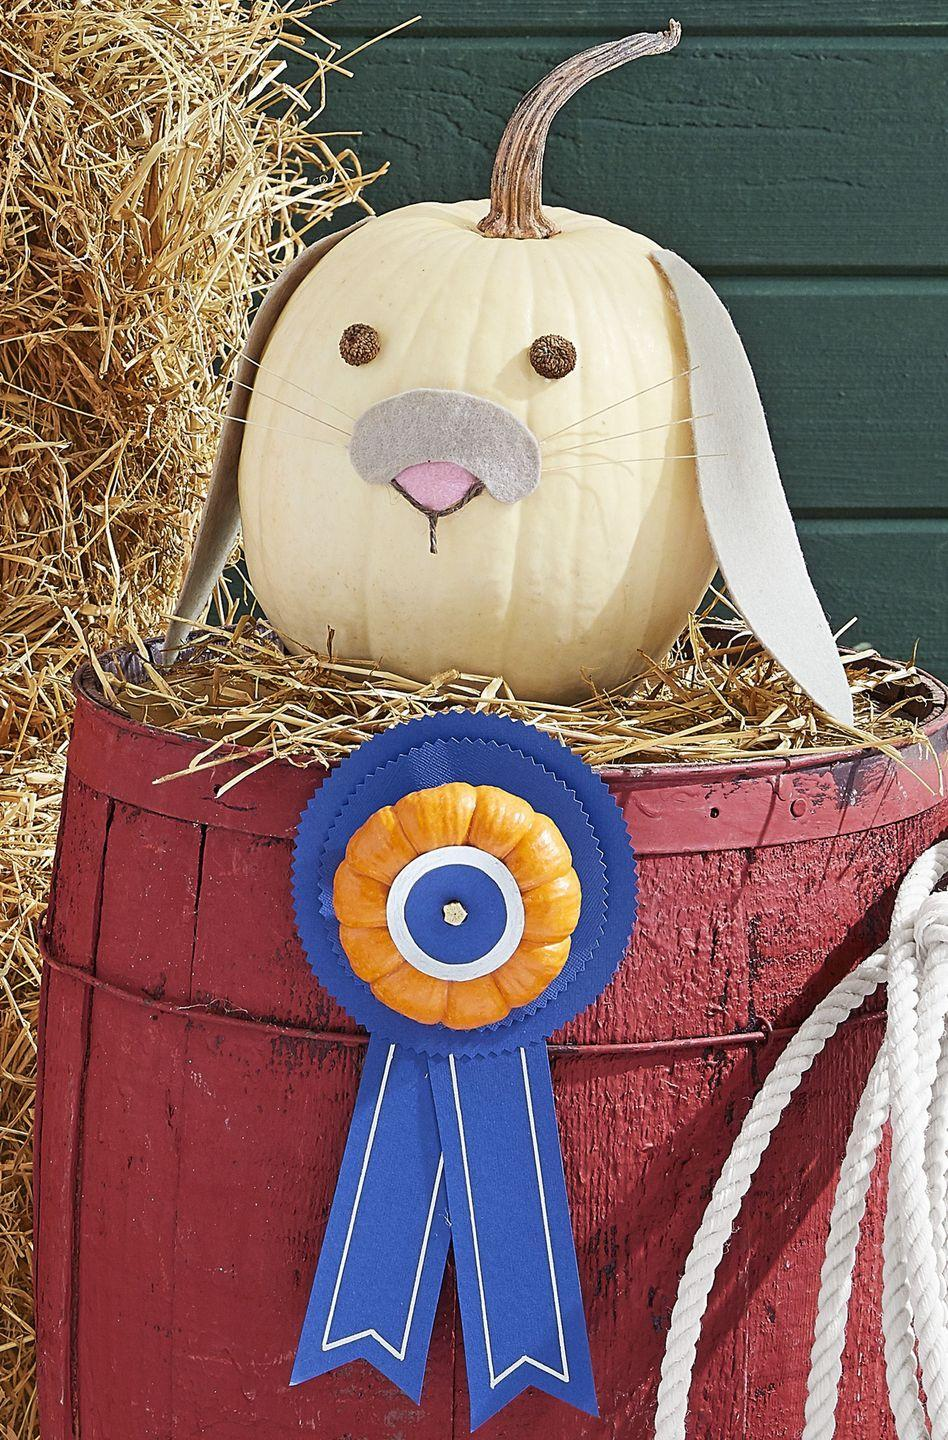 """<p>Every-bunny will love seeing this adorable decoration. <strong><br></strong></p><p><strong>Make the pumpkin:</strong> Download our <a href=""""https://hmg-prod.s3.amazonaws.com/files/pumpkin-carving-template-bunny-ears-1018-1536169820.pdf?tag=syn-yahoo-20&ascsubtag=%5Bartid%7C10050.g.28437255%5Bsrc%7Cyahoo-us"""" rel=""""nofollow noopener"""" target=""""_blank"""" data-ylk=""""slk:ears"""" class=""""link rapid-noclick-resp"""">ears</a> and <a href=""""https://hmg-prod.s3.amazonaws.com/files/pumpkin-carving-template-bunny-nose-1018-1536169820.pdf?tag=syn-yahoo-20&ascsubtag=%5Bartid%7C10050.g.28437255%5Bsrc%7Cyahoo-us"""" rel=""""nofollow noopener"""" target=""""_blank"""" data-ylk=""""slk:top nose"""" class=""""link rapid-noclick-resp"""">top nose</a> templates to trace on <a href=""""https://www.amazon.com/Rainbow-Classic-Felt-Silver-Gray/dp/B0033LWUE2?tag=syn-yahoo-20&ascsubtag=%5Bartid%7C10050.g.28437255%5Bsrc%7Cyahoo-us"""" rel=""""nofollow noopener"""" target=""""_blank"""" data-ylk=""""slk:gray felt"""" class=""""link rapid-noclick-resp"""">gray felt</a>, scaling up or down based on the size of your pumpkin; cut out. Trace the separate nose """"button"""" on pink felt and cut out, again sizing accordingly. Hot-glue the pink nose button on the center of a white pumpkin. Using craft glue, attach twigs from wheat stalks to the back of the gray nose top. Glue on top of the pink button, overlapping slightly. Outline the bottom of the nose with <a href=""""https://www.amazon.com/Tandy-Leather-Waxed-Thread-11207-03/dp/B001QJNMPY/ref=sr_1_12?tag=syn-yahoo-20&ascsubtag=%5Bartid%7C10050.g.28437255%5Bsrc%7Cyahoo-us"""" rel=""""nofollow noopener"""" target=""""_blank"""" data-ylk=""""slk:brown twine"""" class=""""link rapid-noclick-resp"""">brown twine</a> and attach with hot glue. Attach the ears and <a href=""""https://www.amazon.com/SAMYO-Simulation-Artificial-Nutty-brown-Decoration/dp/B011XVKA9U?tag=syn-yahoo-20&ascsubtag=%5Bartid%7C10050.g.28437255%5Bsrc%7Cyahoo-us"""" rel=""""nofollow noopener"""" target=""""_blank"""" data-ylk=""""slk:acorn tops"""" class=""""link rapid-noclick-resp"""">acorn tops</a> for eyes with """